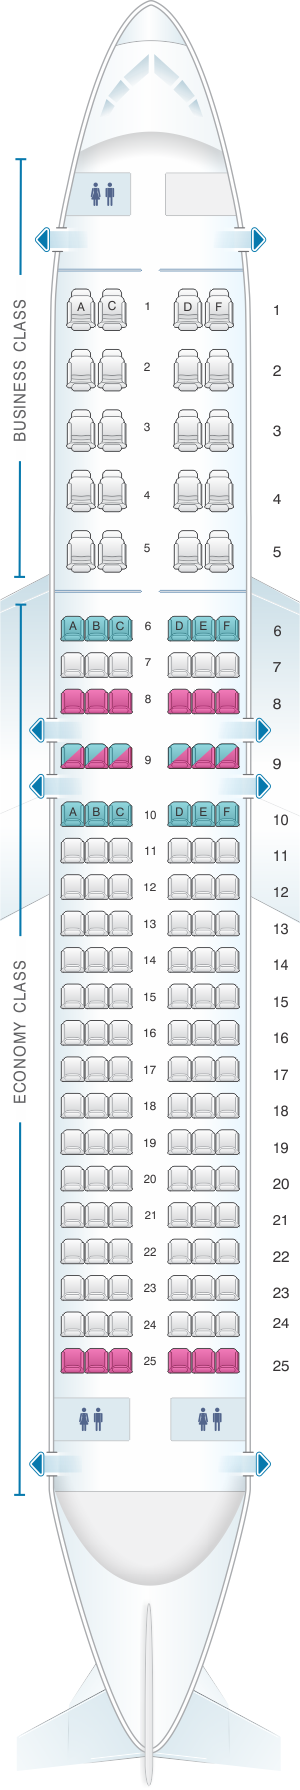 Seat Map Aeroflot Russian Airlines Airbus A320 200 Config1